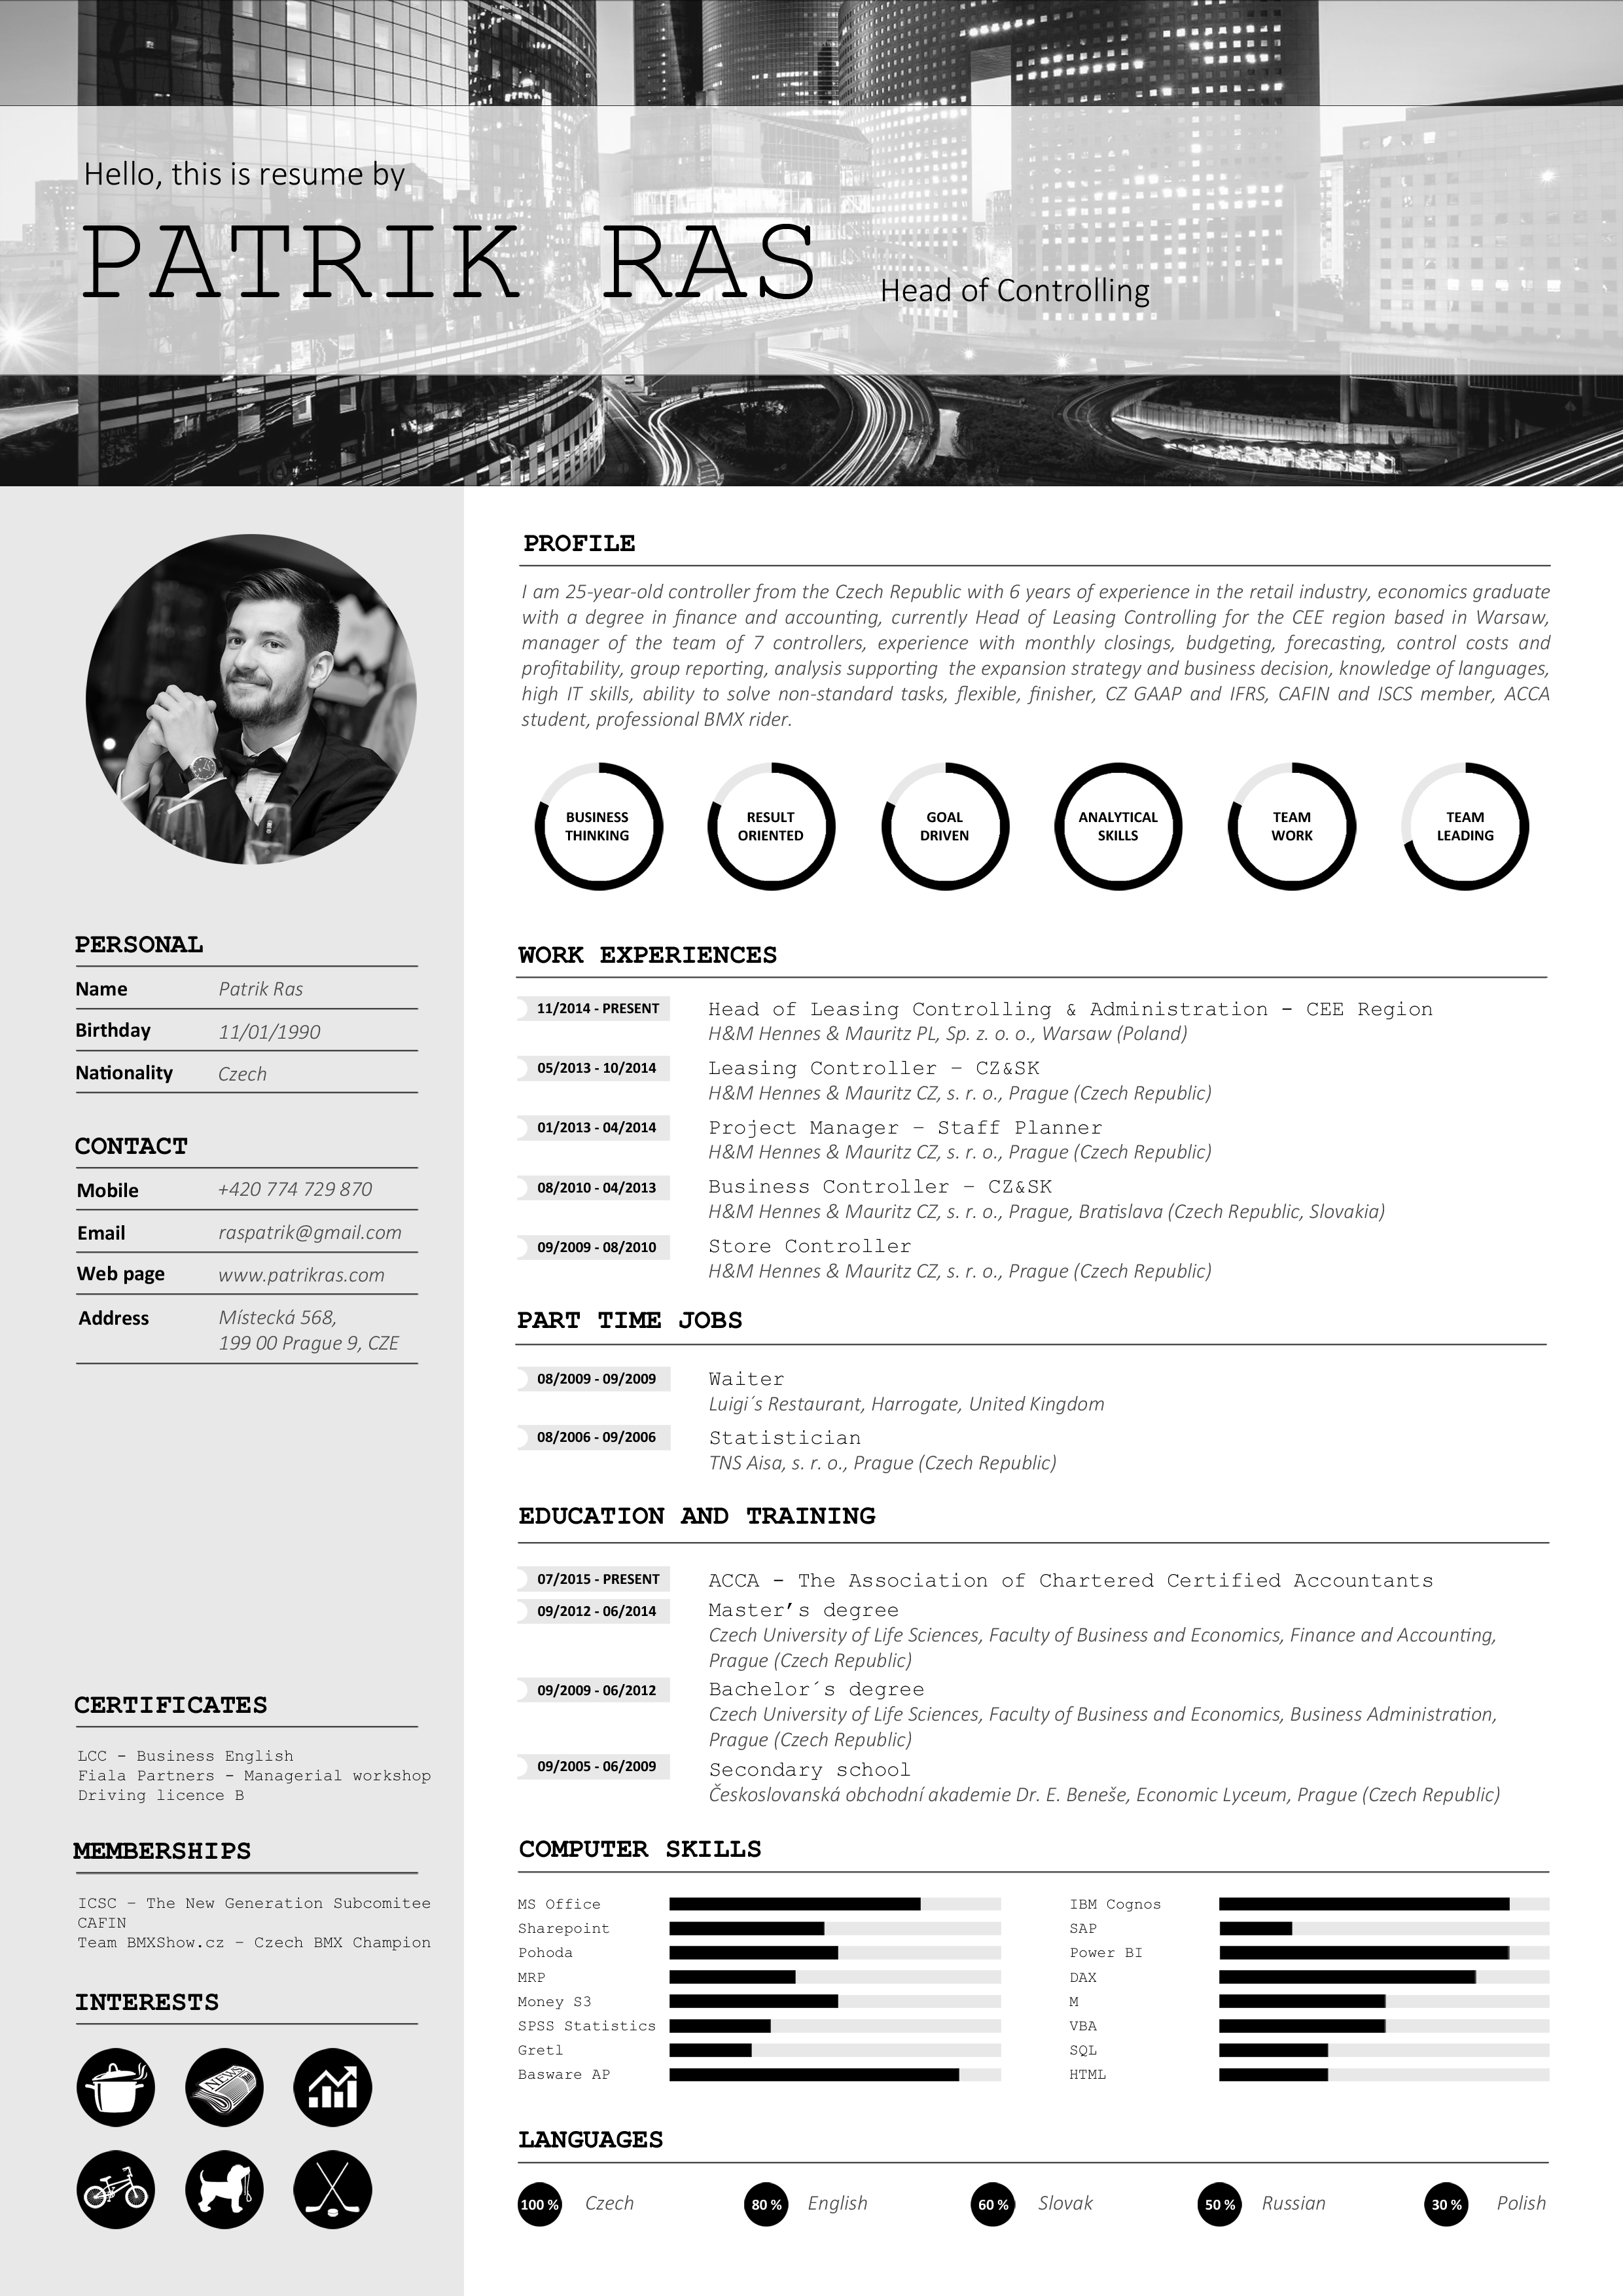 resume  cv  template  graphics  blackandwhite  bw  icons  icongraphic  business  work  job